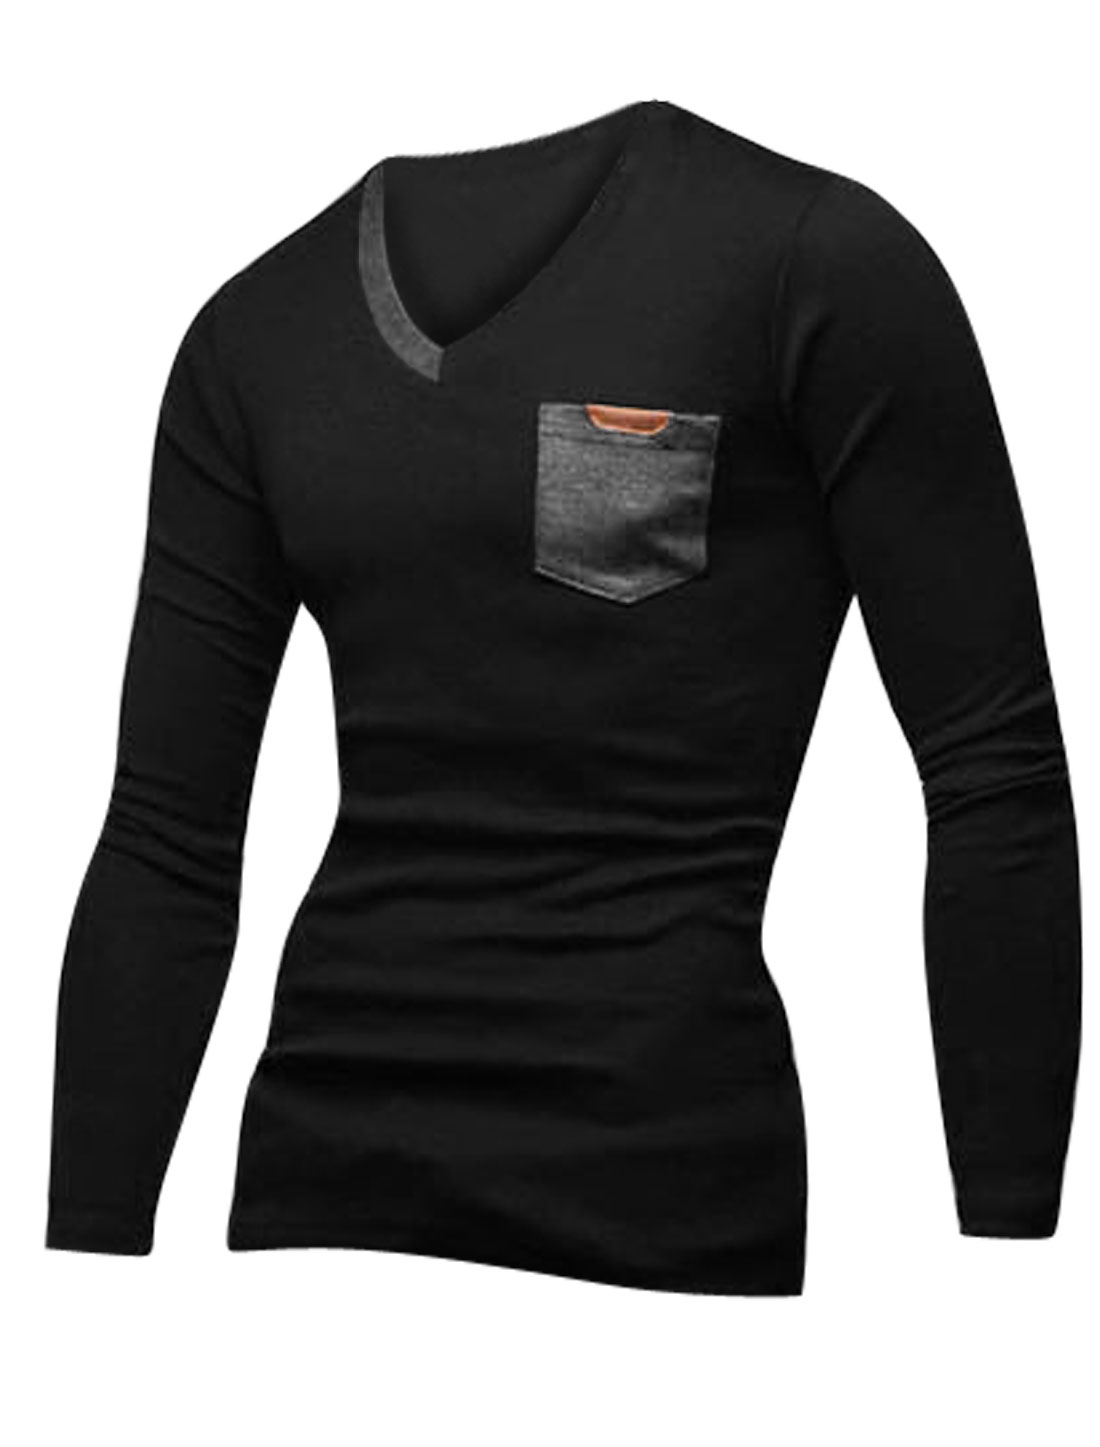 V Neck Long Sleeves Pullover Casual T-Shirt for Men Black Gray M